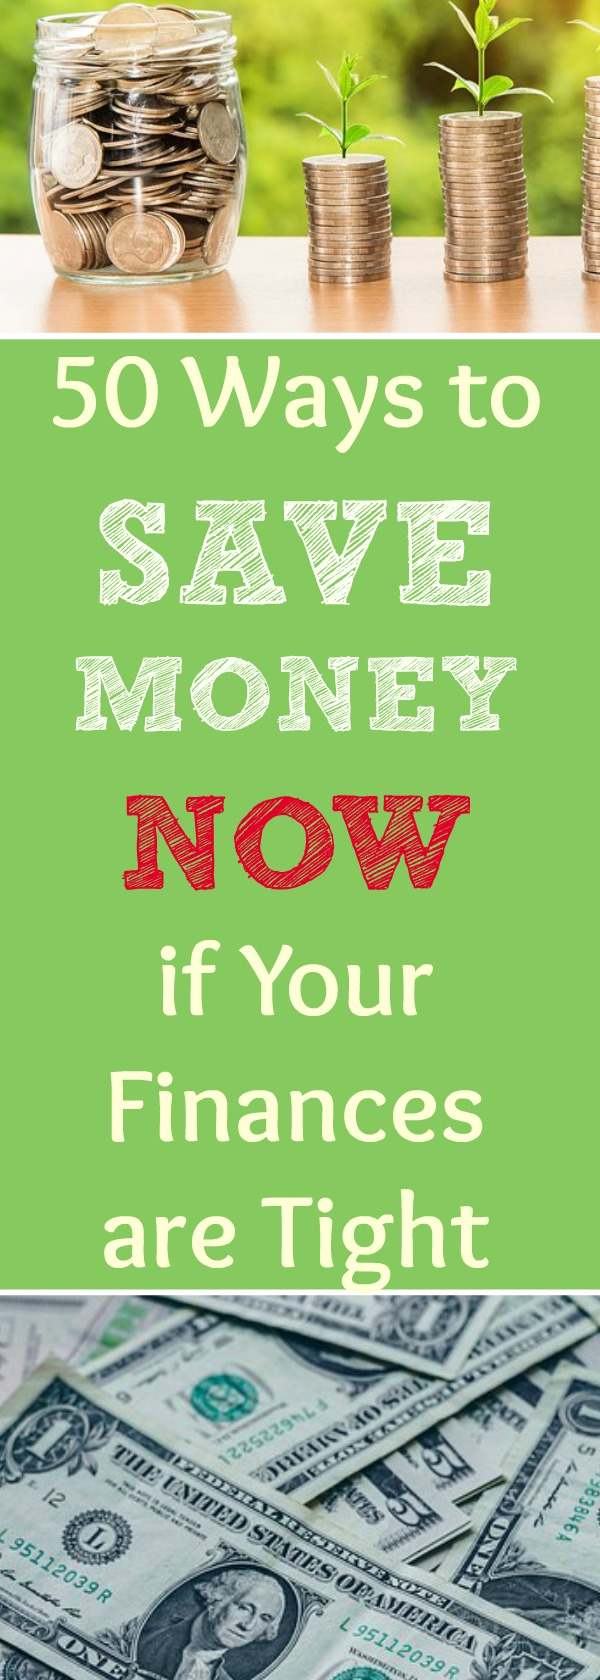 We all go through through seasons in our life. If you are in a tight financial situation, I've got 50 money saving ideas you can do right now to help your finances improve. Save money while living well. How to save money in all kinds of creative ways!